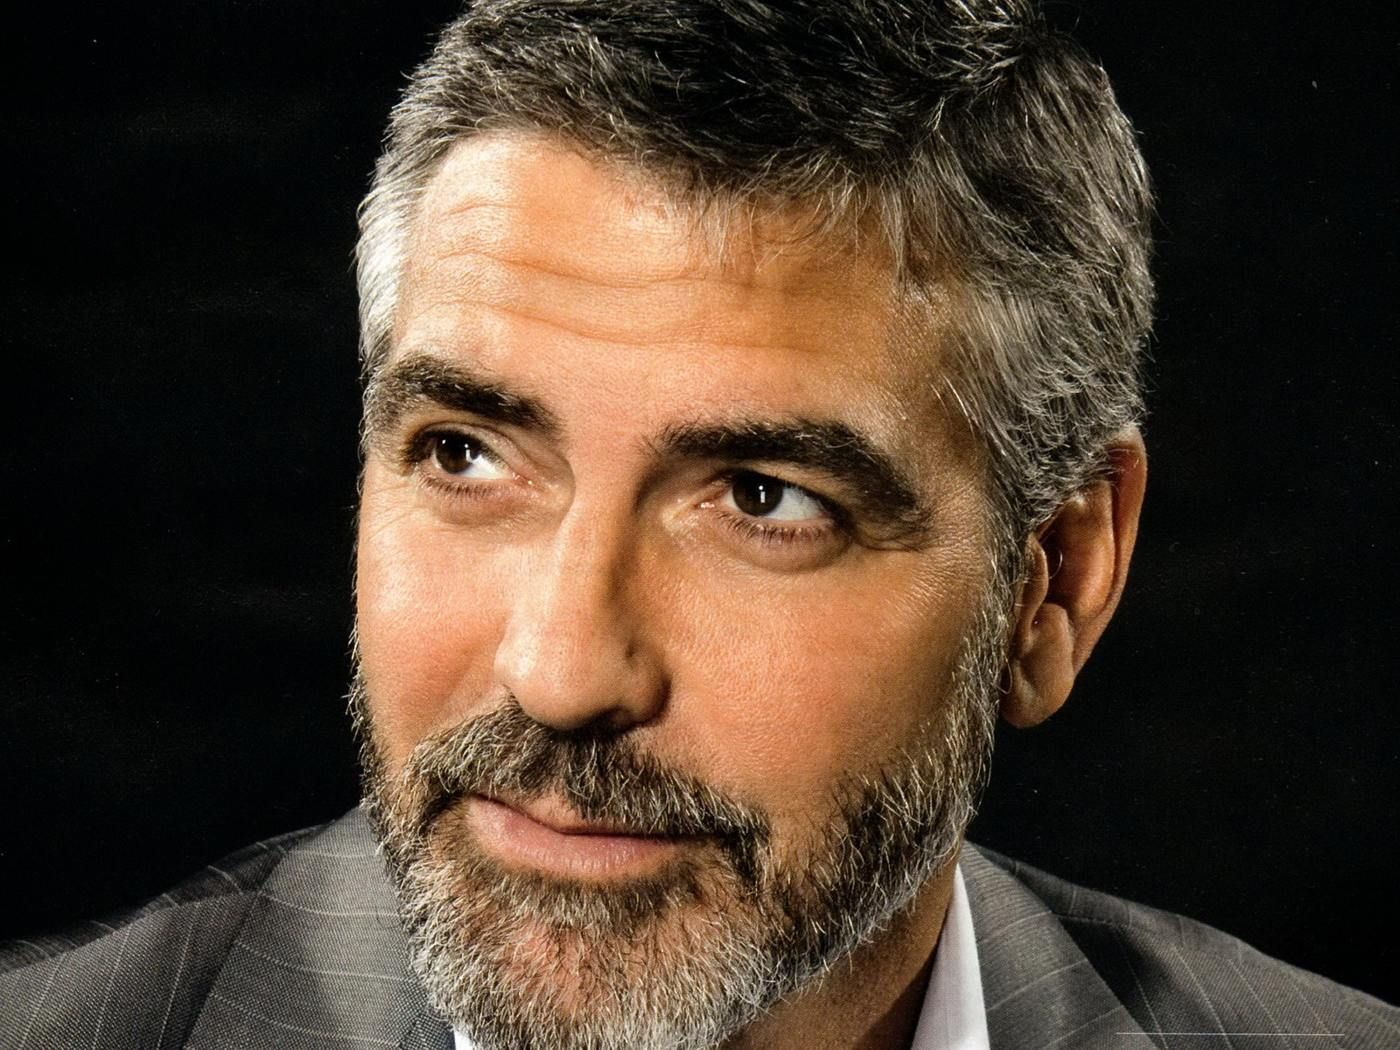 Beard Design Ideas facial hair and beard styles gallery 5 George Clooney Signature Simple Haircuts And Grey Beard